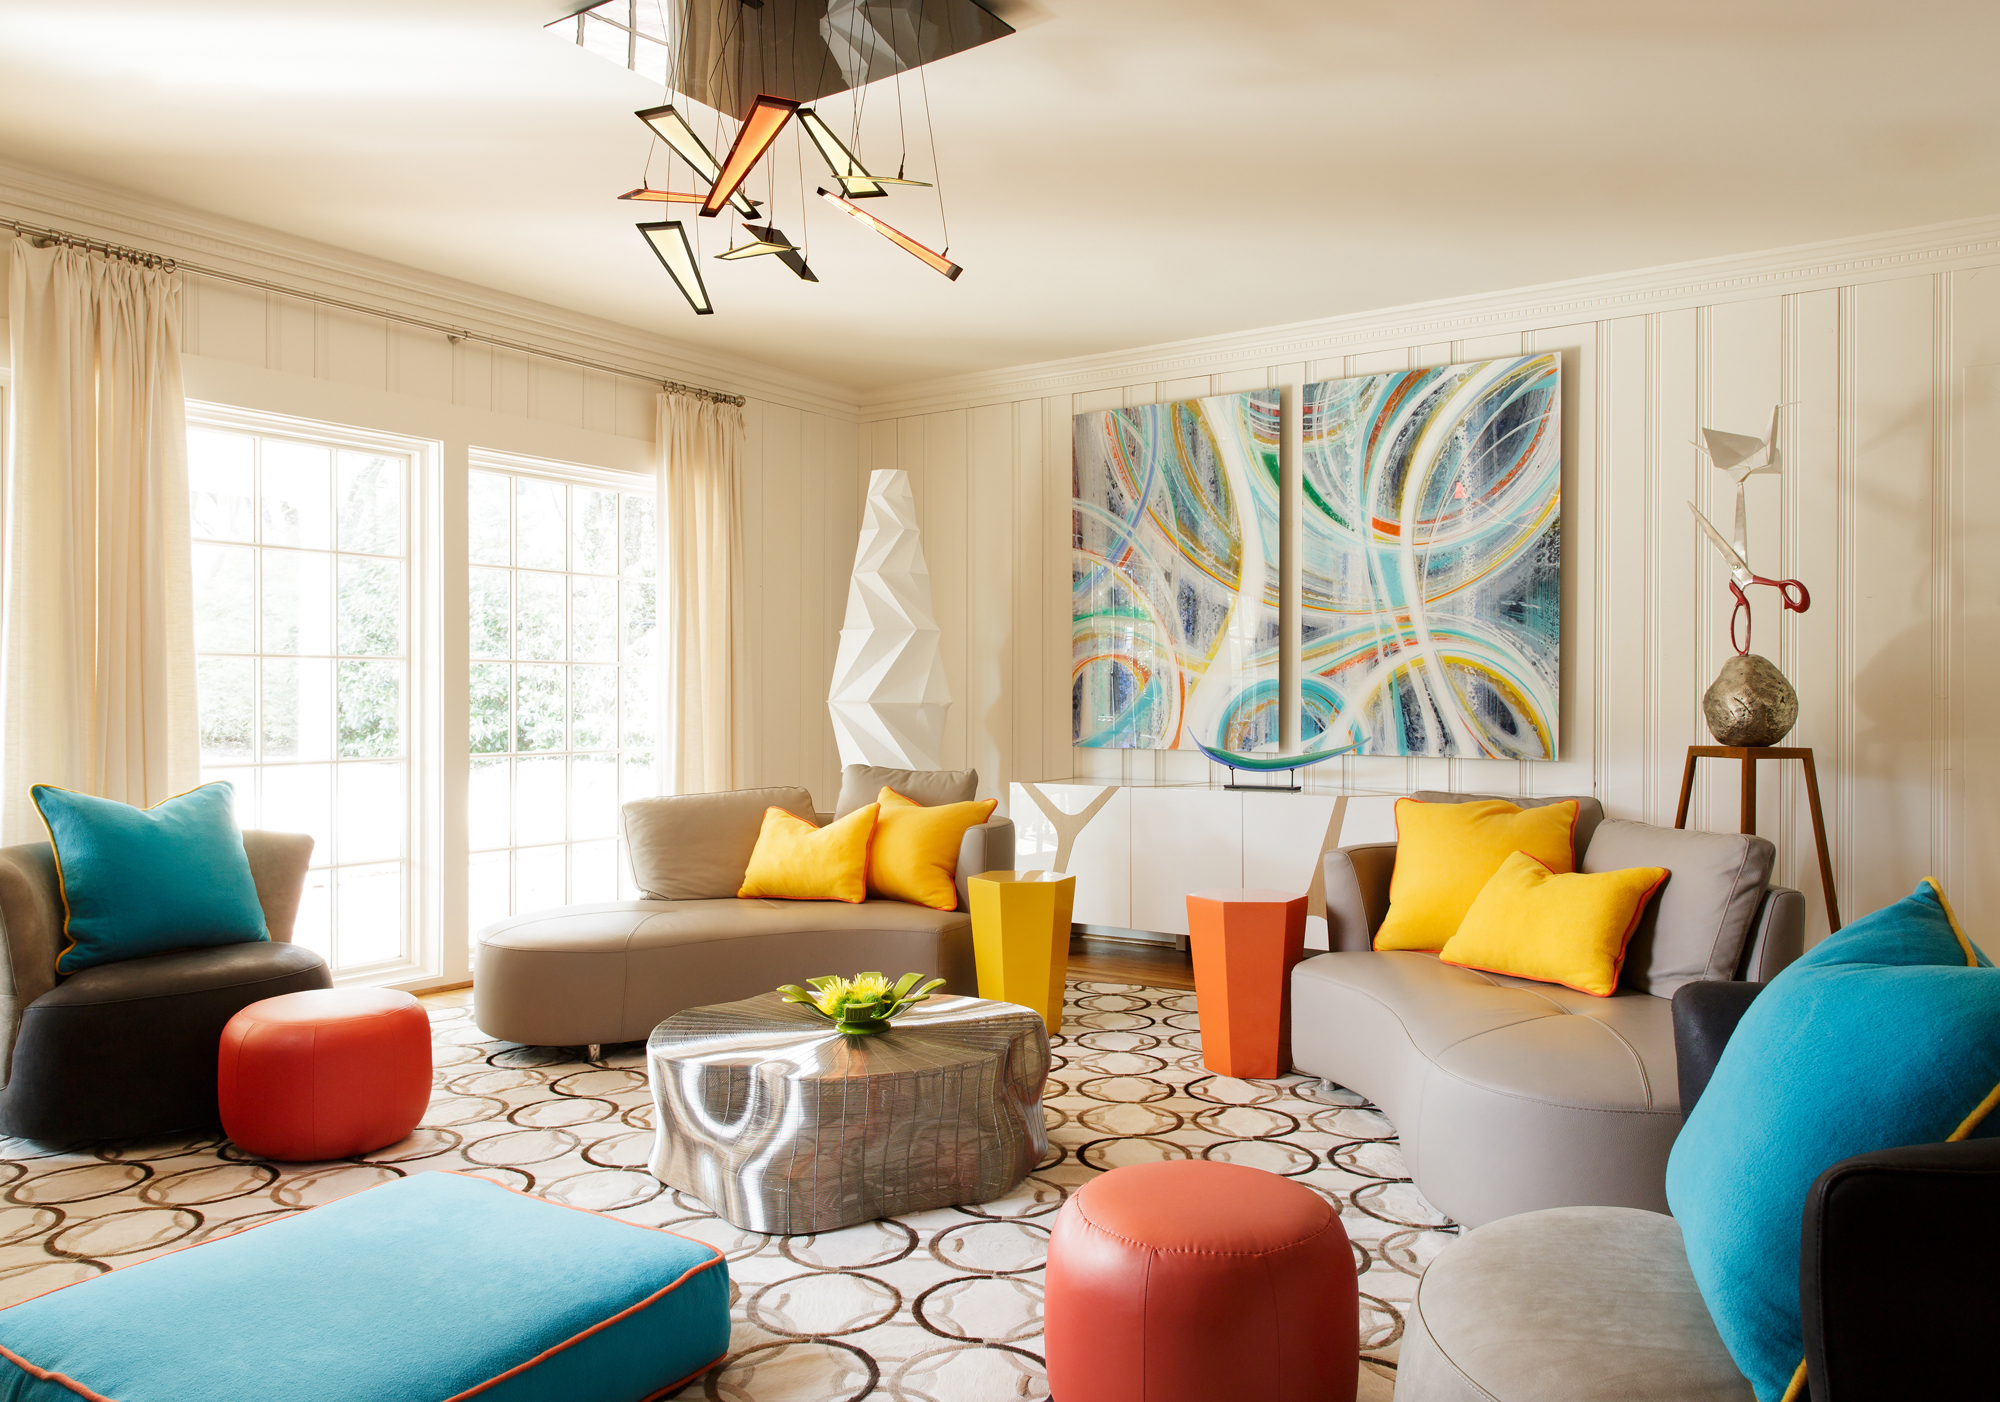 ASID LEGACY OF DESIGN 2015 FIRST PLACE LIVING AREA CONTEMPORARY MARY ANNE SMILEY INTERIORS